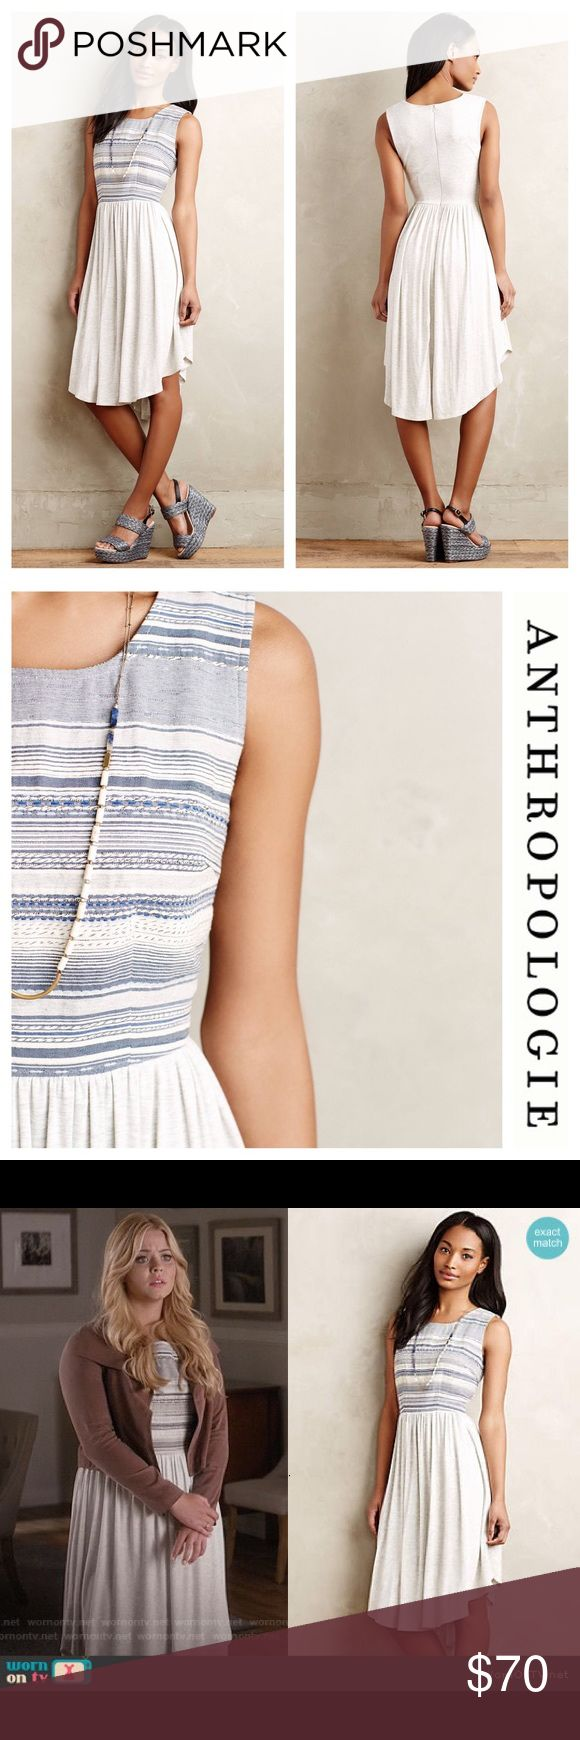 Anthropologie Dolan Left Coast Sabado Dress Blue L Anthropology brand Dolan Left Coast Collection Sabado Dress! You may have seen this dress on Ali from Pretty Little Liars! This dress will compliment any body shape with its fit-and-flare skirt and the empire silhouette. An asymmetric circle hem keeps it current. Two zippers help you get in and out, one on the side and a long dramatic back zip. This sleeveless dress is perfect for summer or any other season as long as you have a cute coat to…